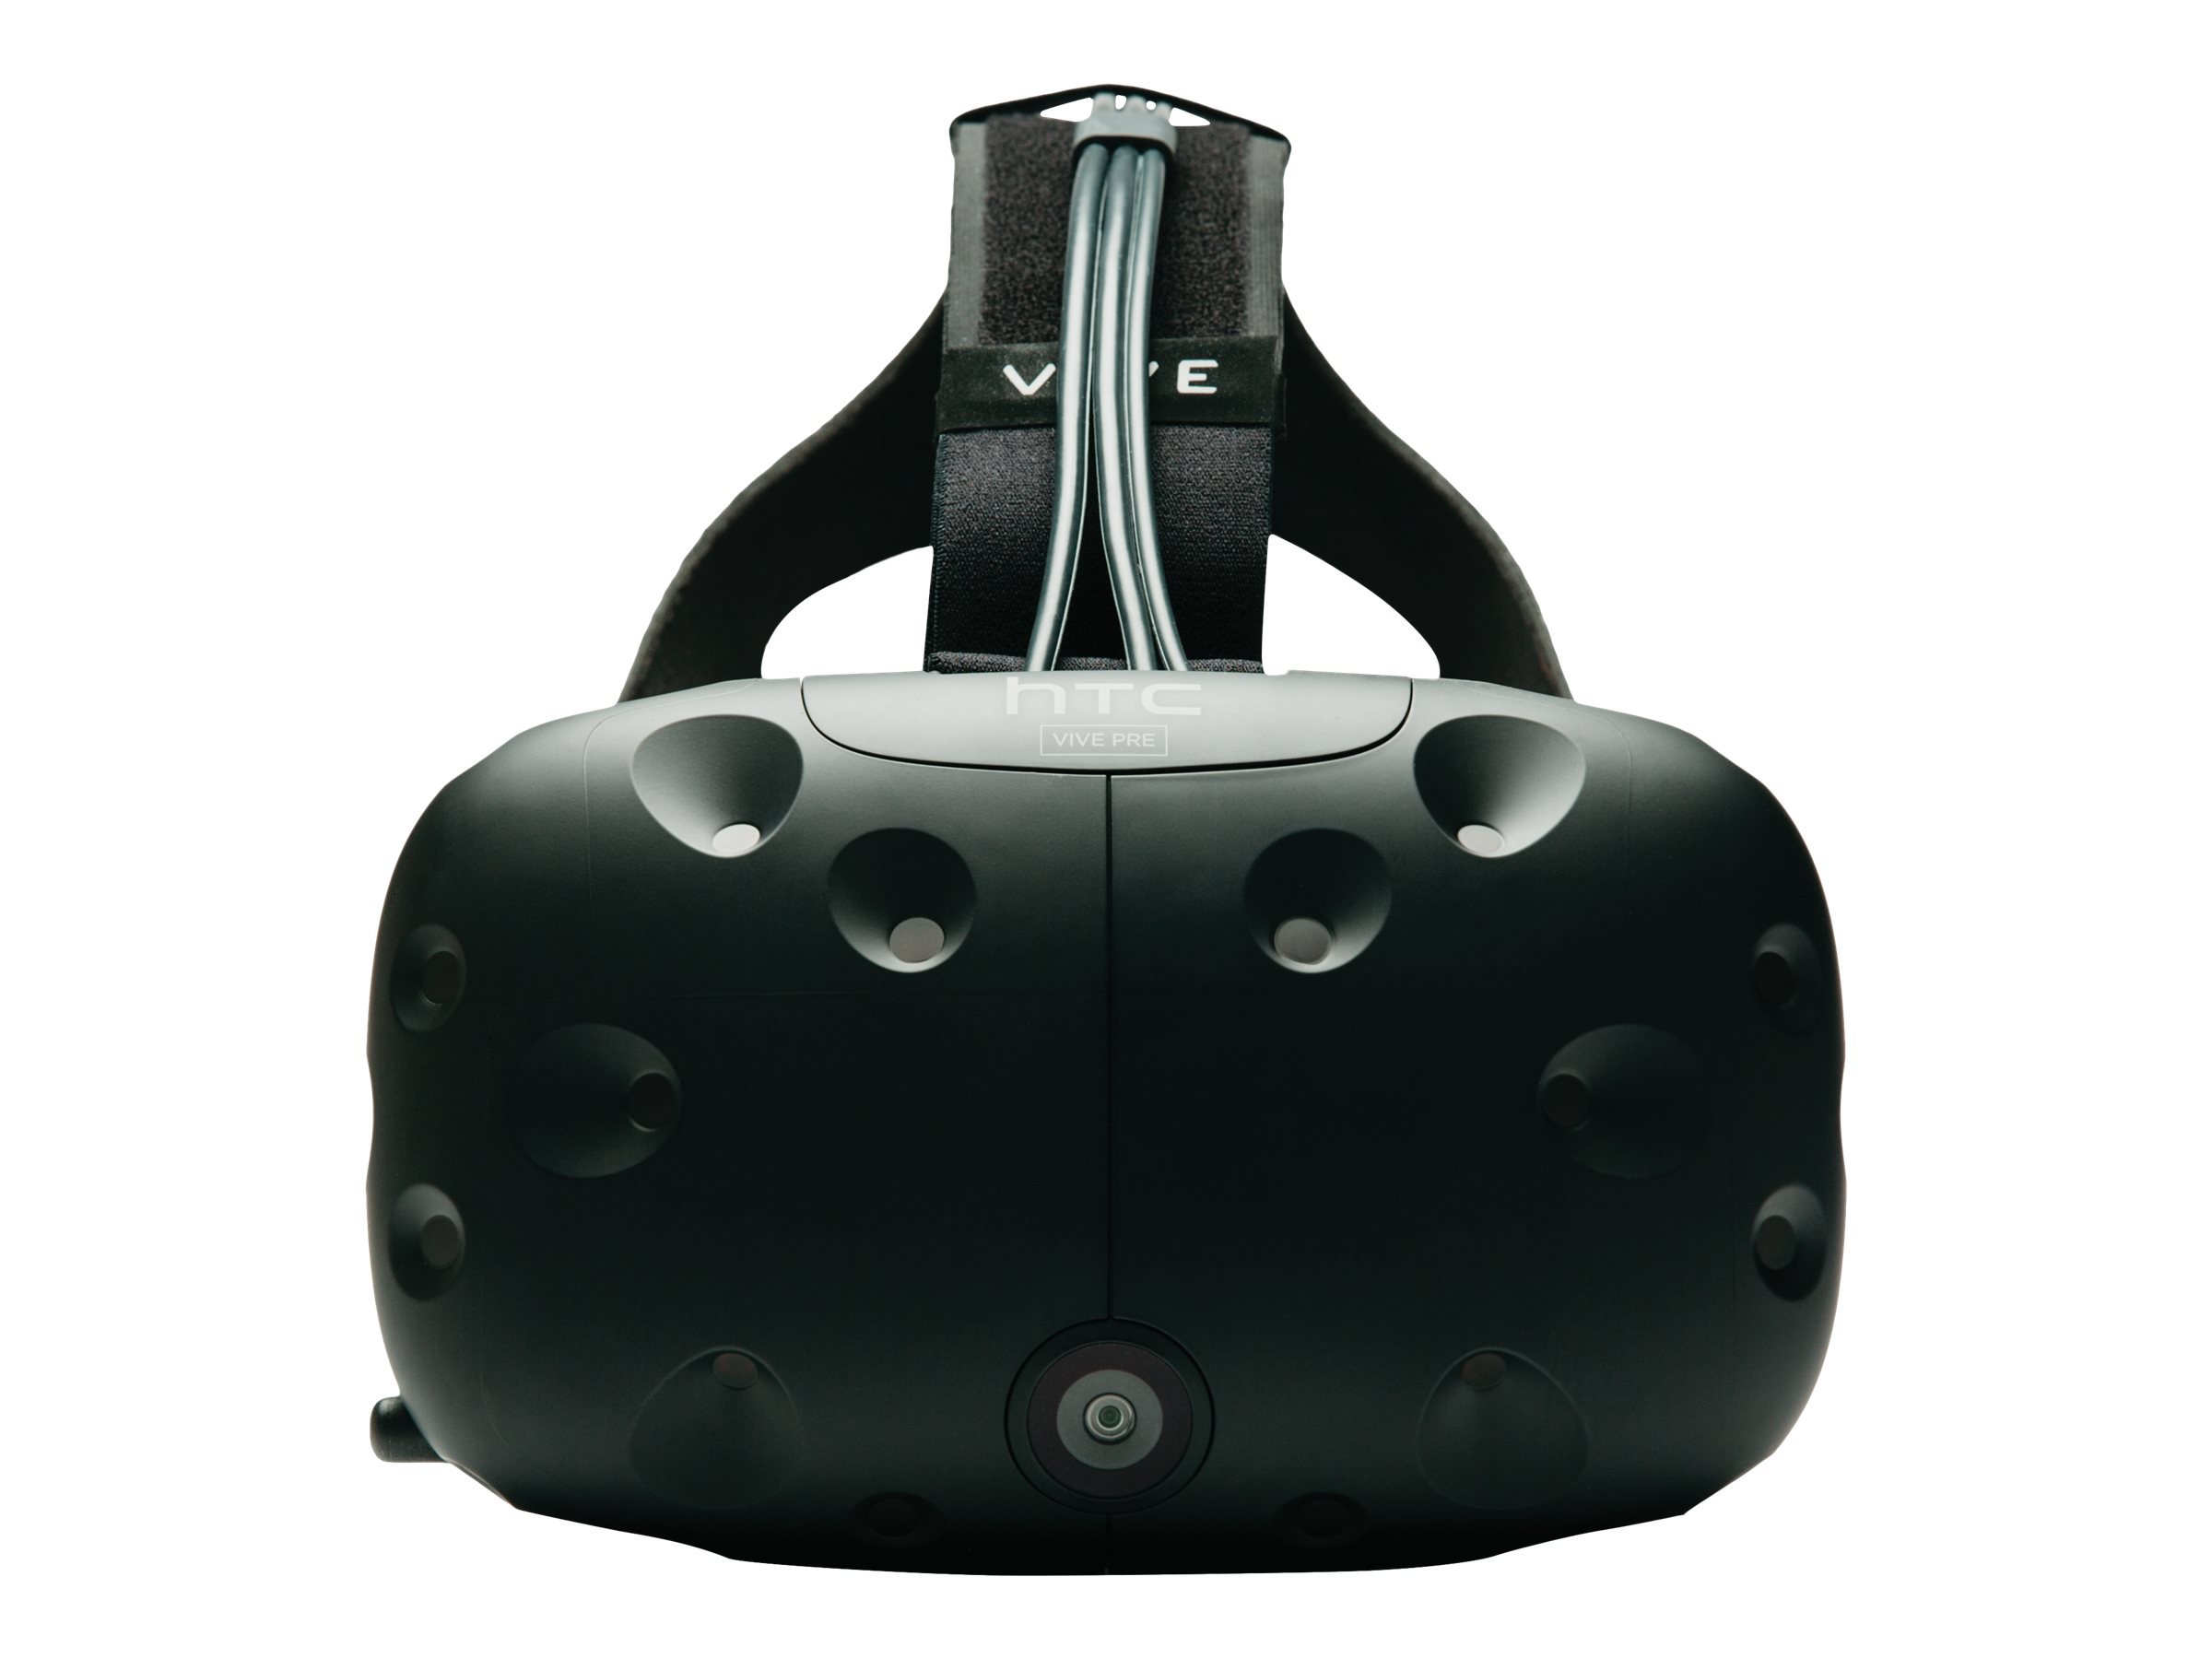 HTC VIVE - Business Edition - Virtual-Reality-Headset - tragbar - 2160 x 1200 - HDMI, Mini DisplayPort